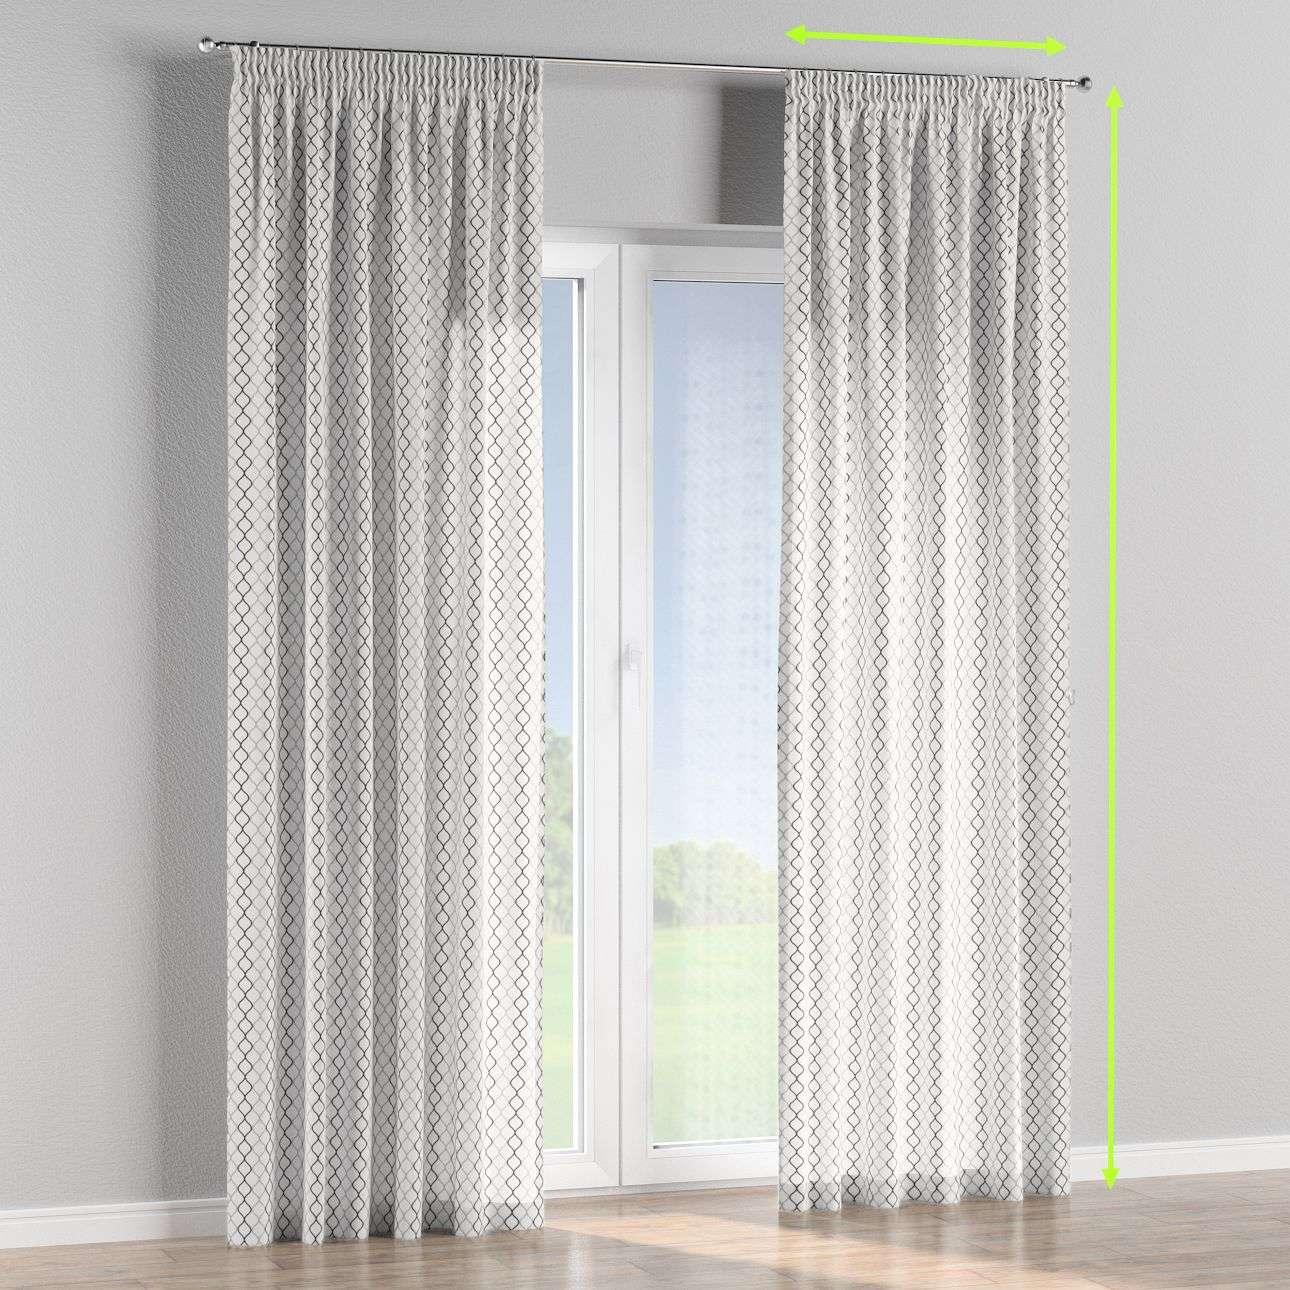 Pencil pleat curtains in collection Geometric, fabric: 141-46